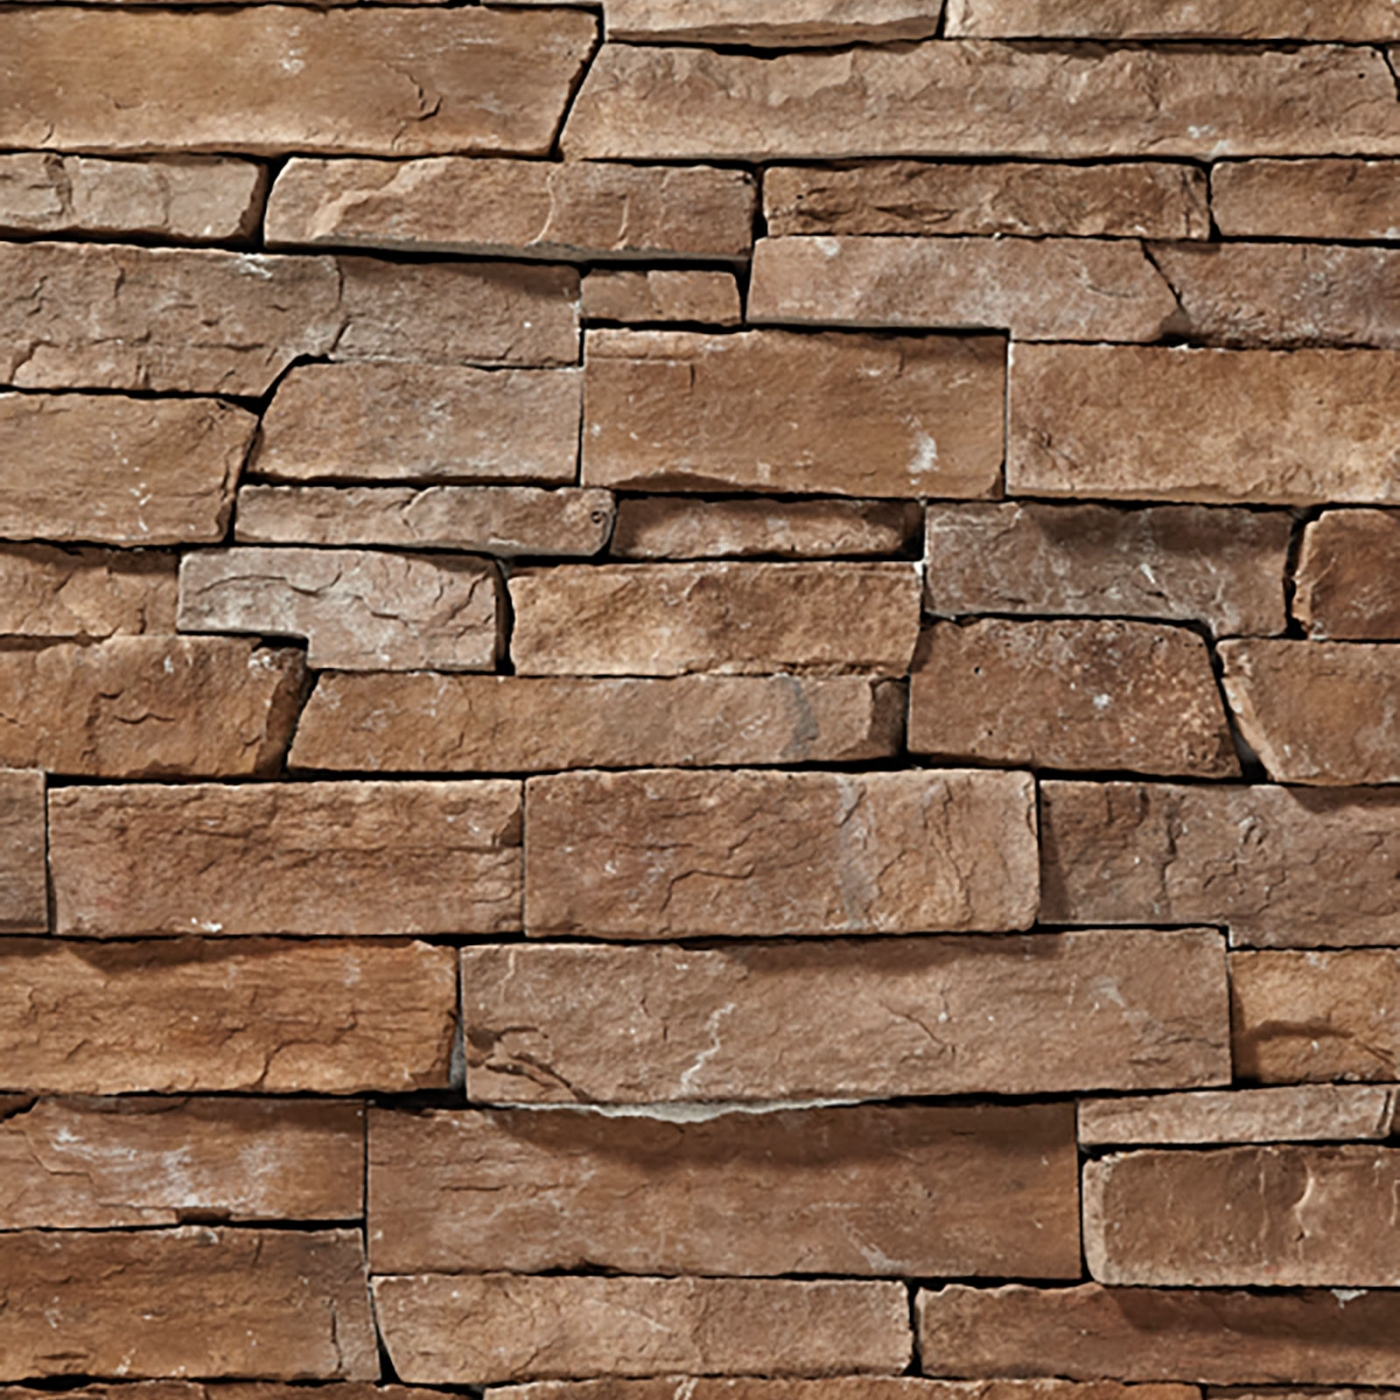 New Orleans Southern Ledgestone Stone Veneer from Environmental StoneWorks